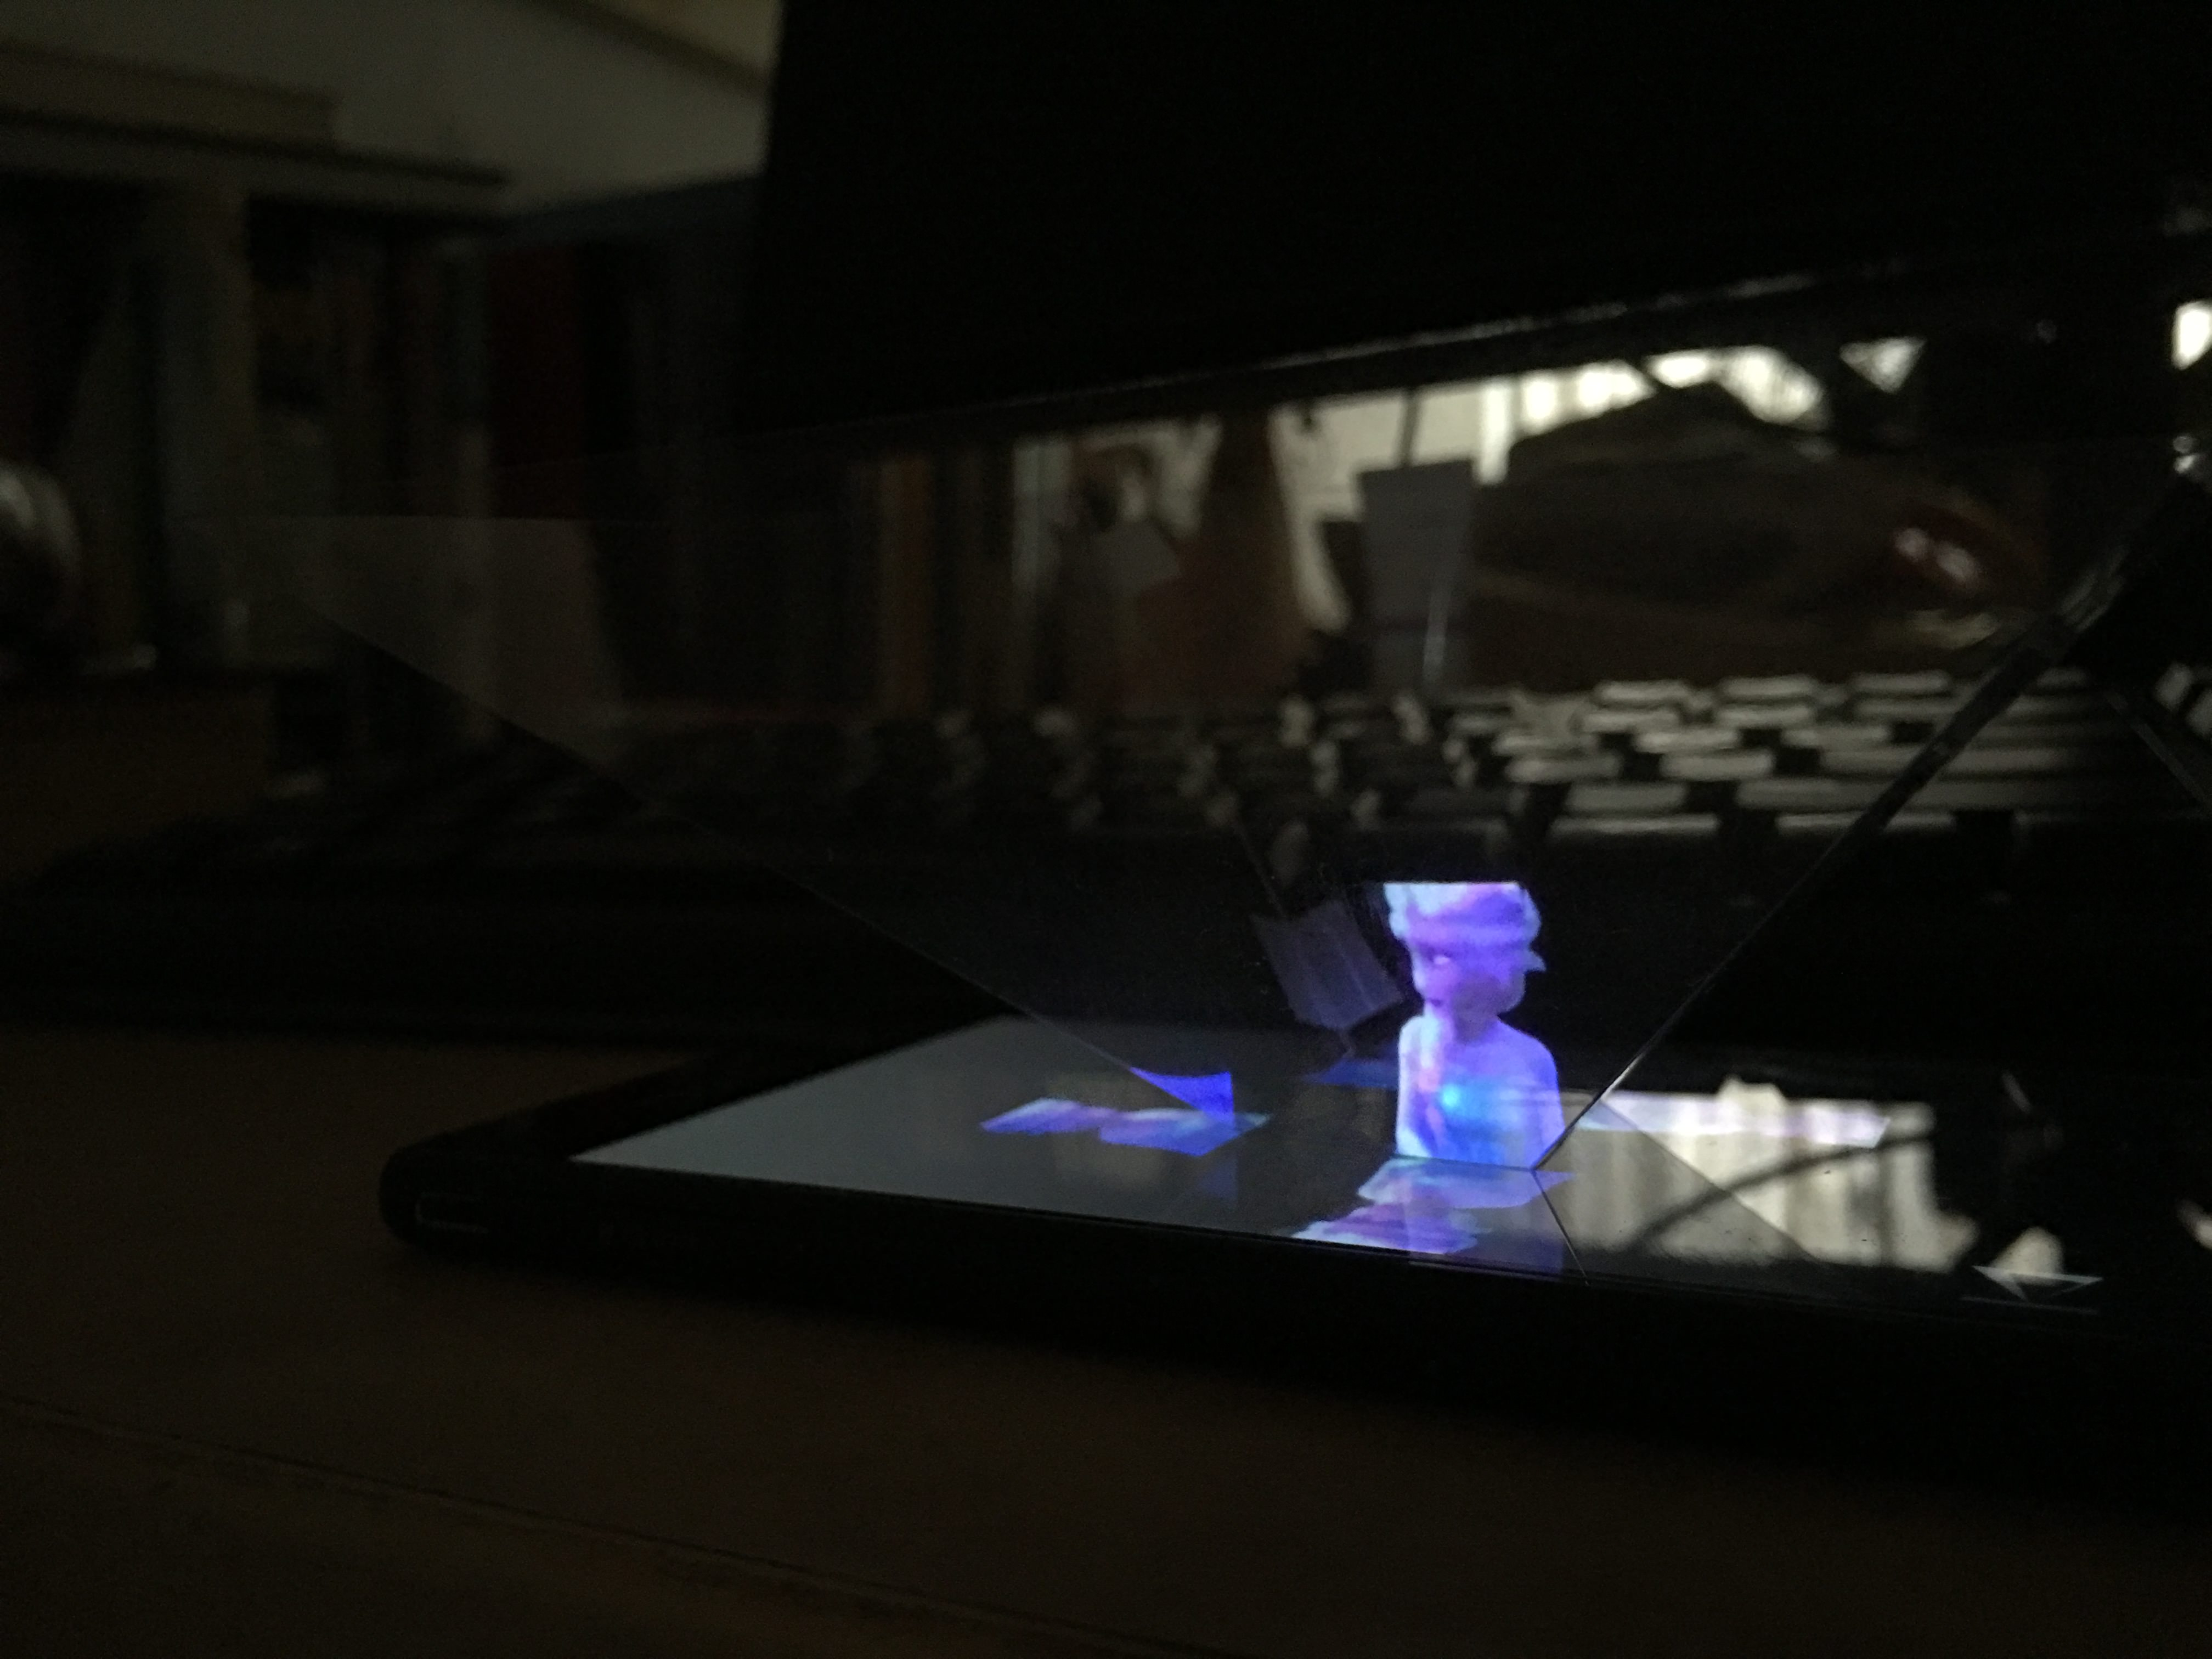 download diy 3d hologram template for smartphone created